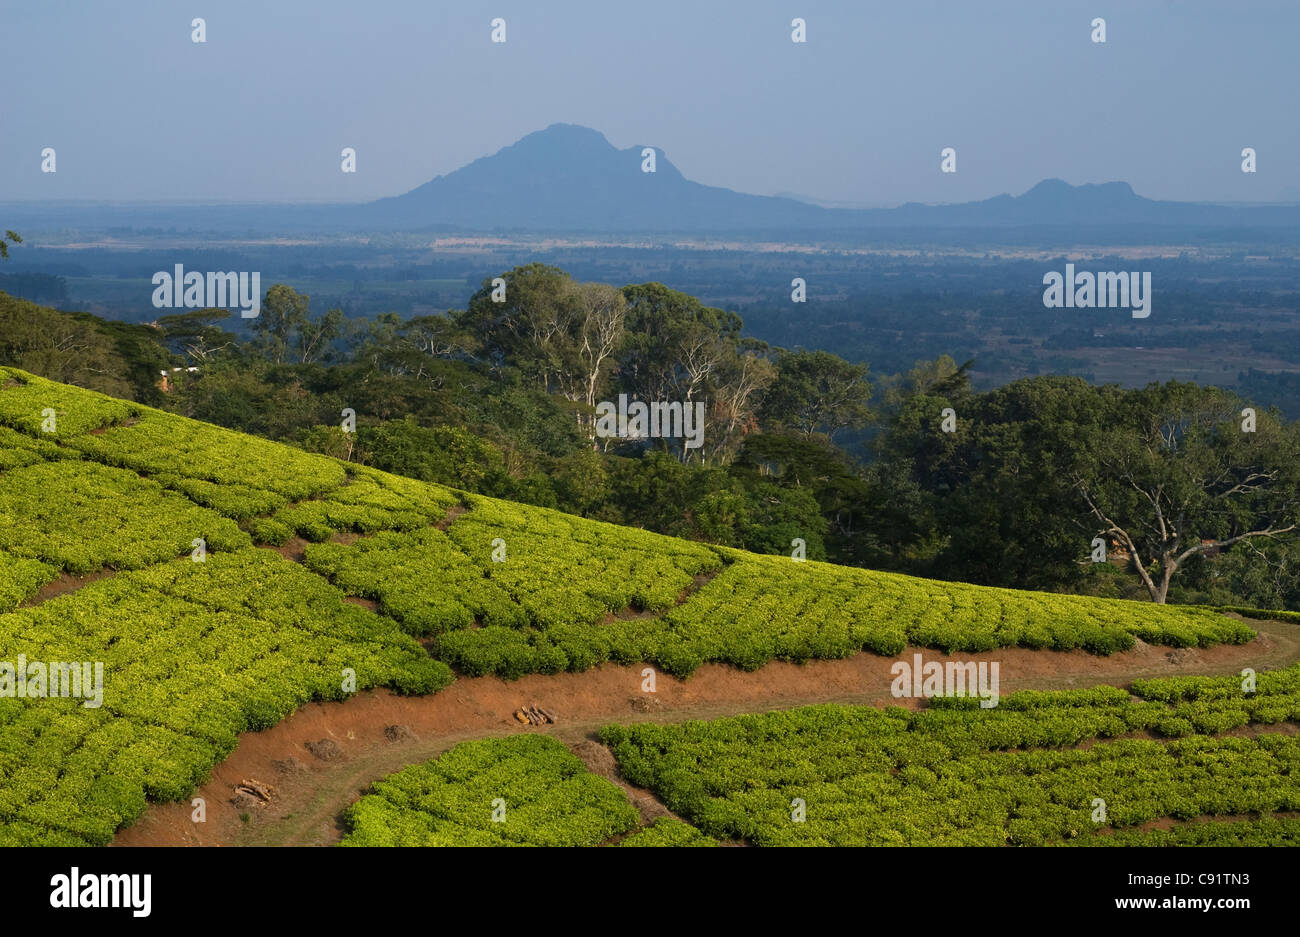 mozambique agriculture stockfotos mozambique agriculture bilder alamy. Black Bedroom Furniture Sets. Home Design Ideas